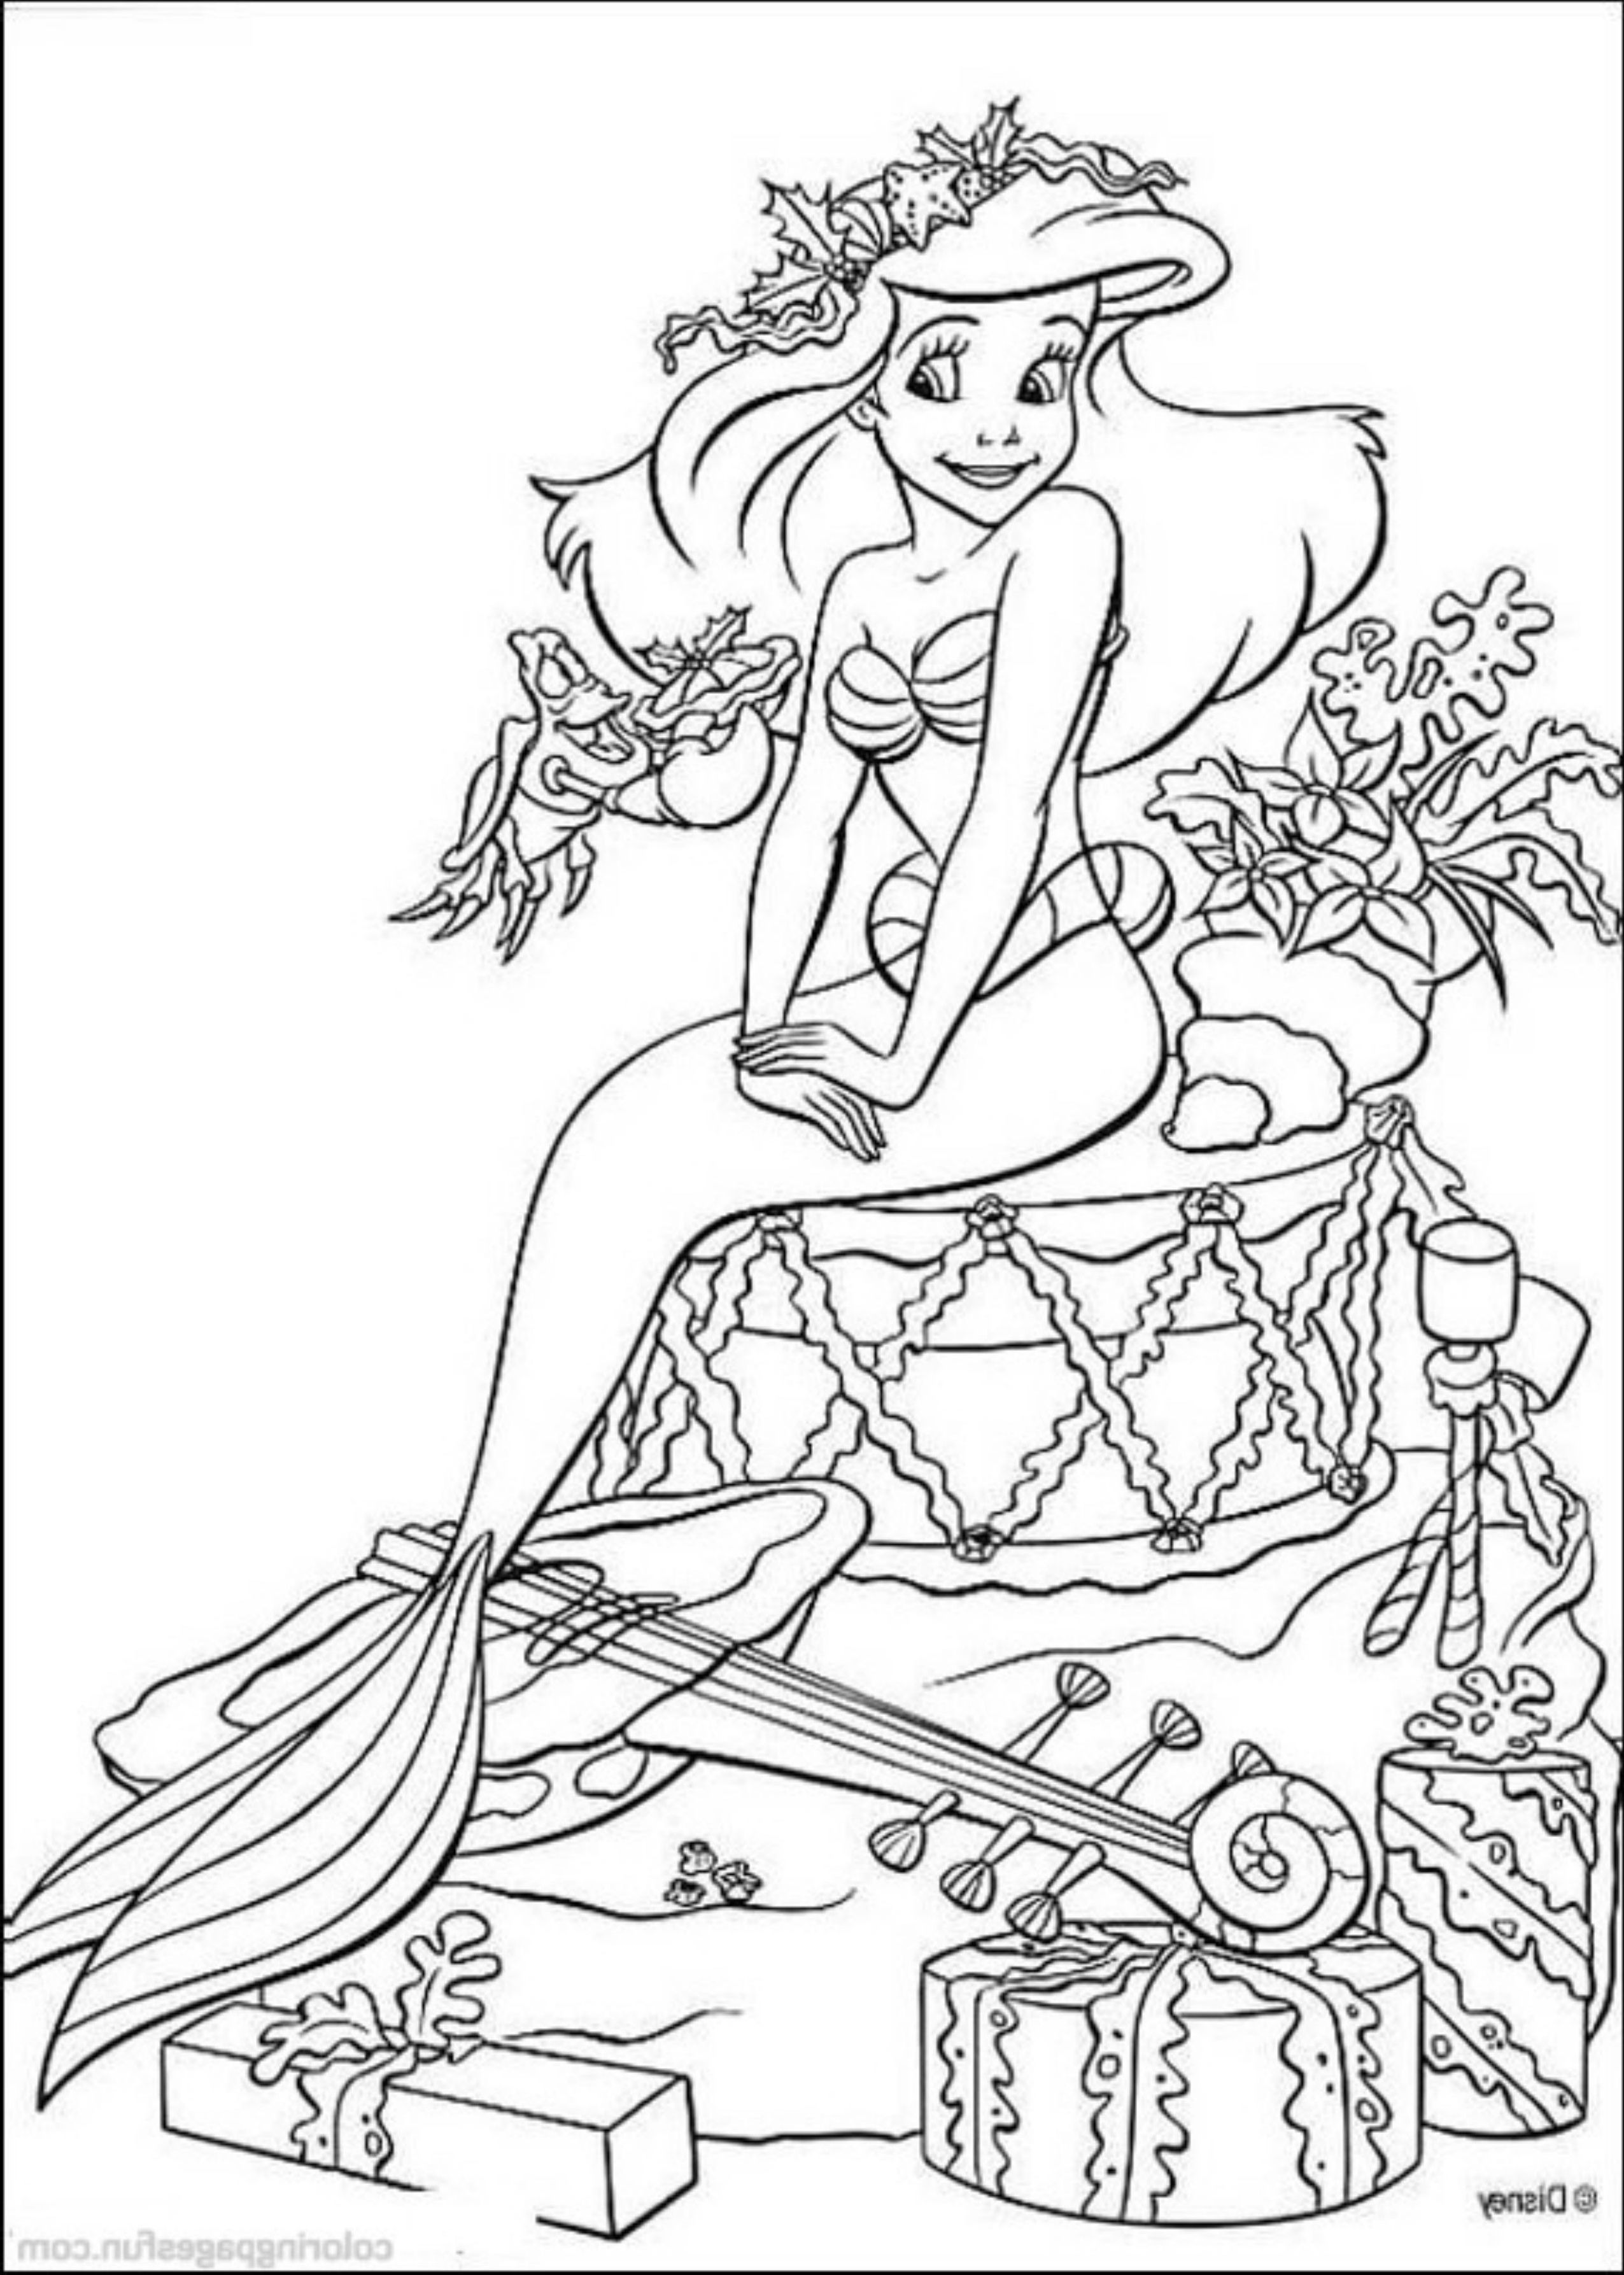 - Ursula From The Little Mermaid Coloring Pages - Printable Kids